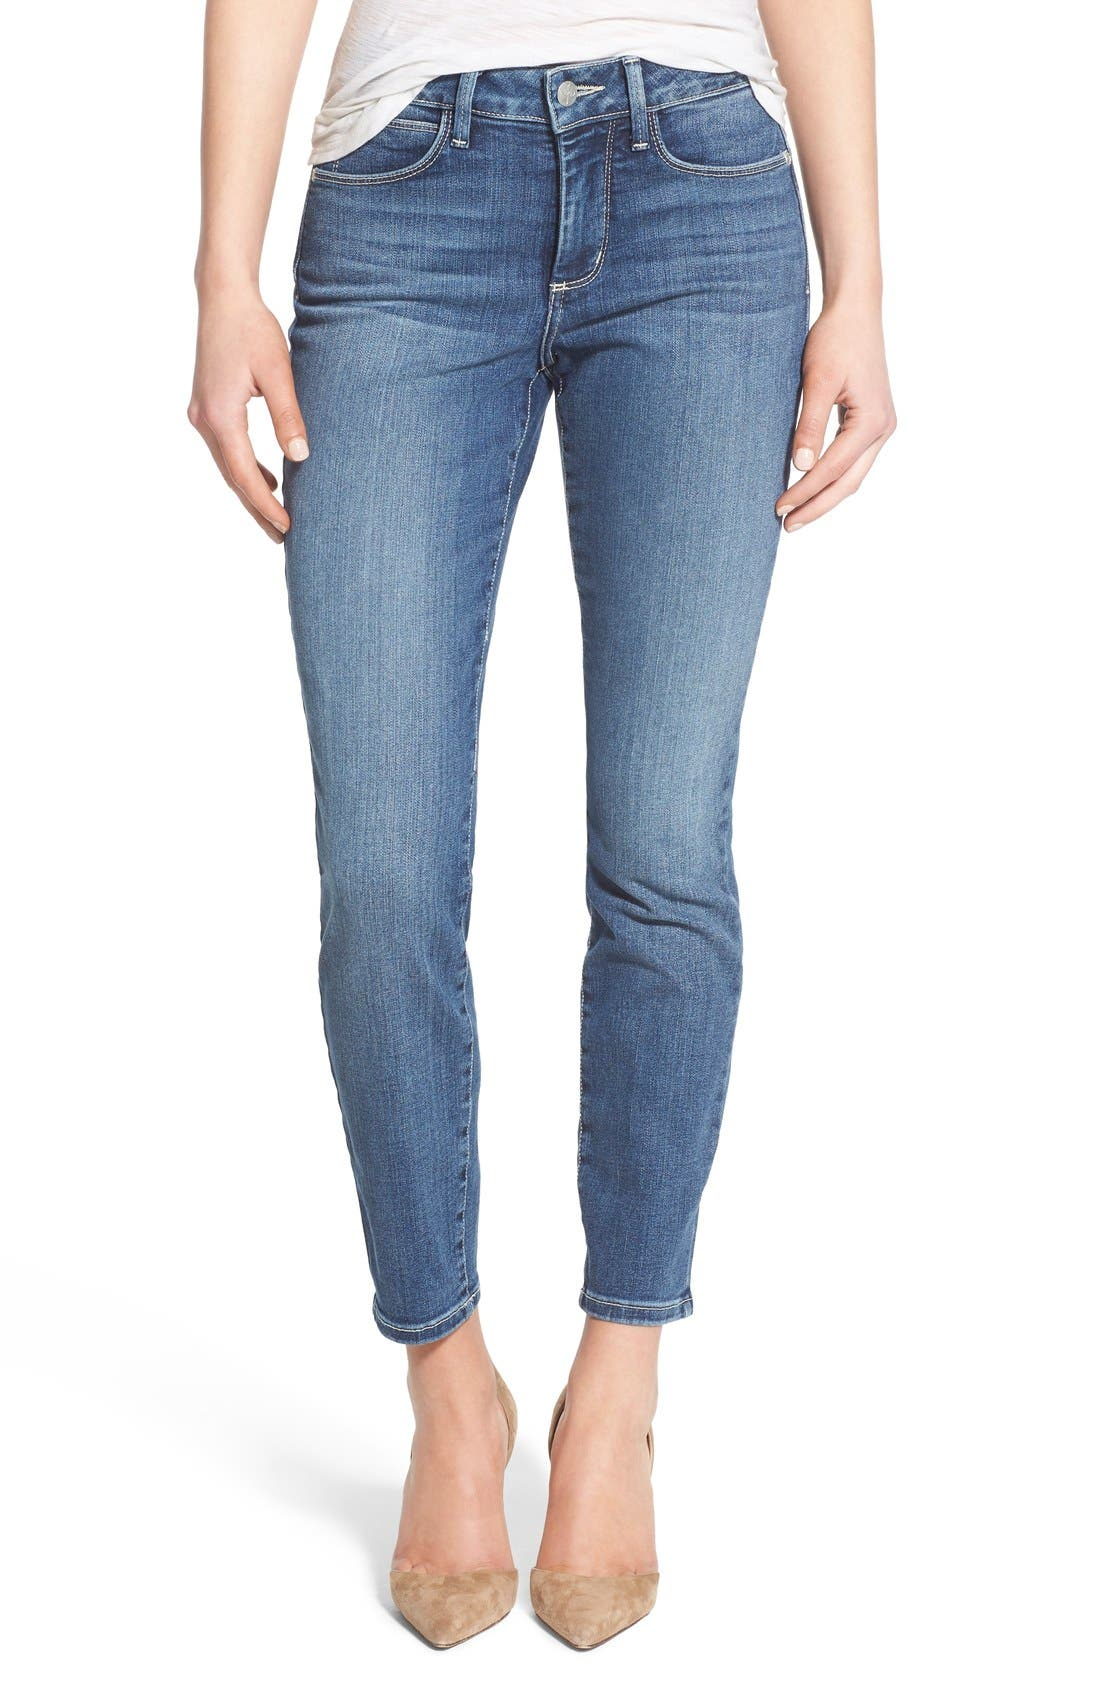 'Clarissa' Stretch Ankle Skinny Jeans,                         Main,                         color, Heyburn